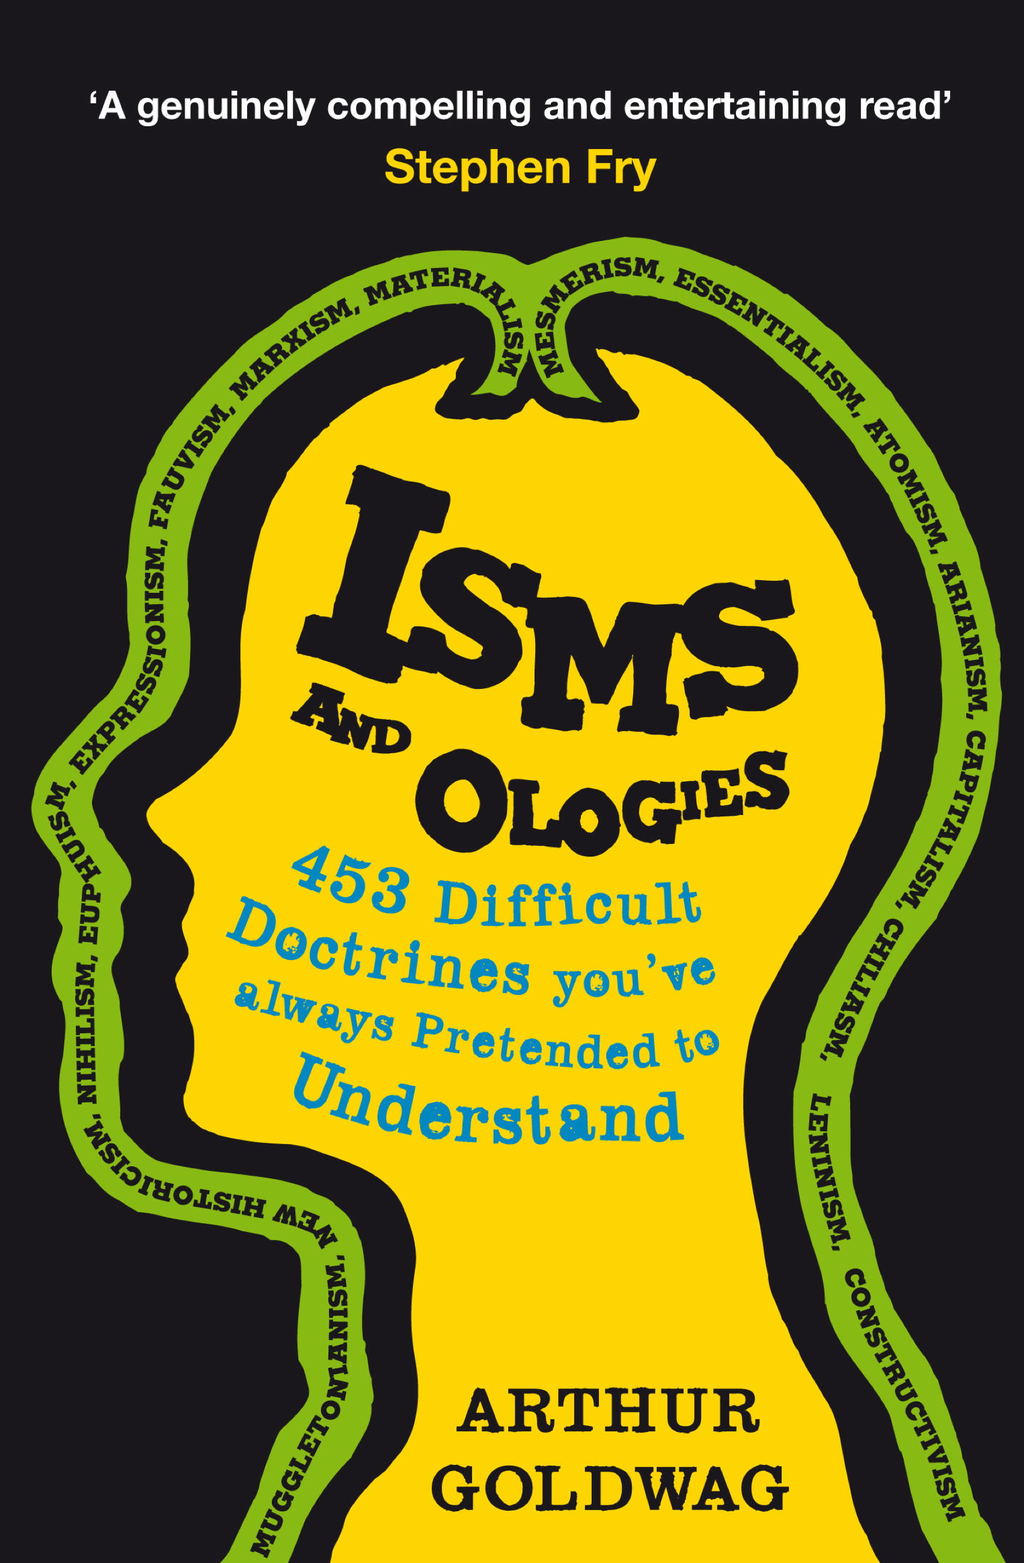 Isms and Ologies 453 Difficult Doctrines You've Always Pretended to Understand